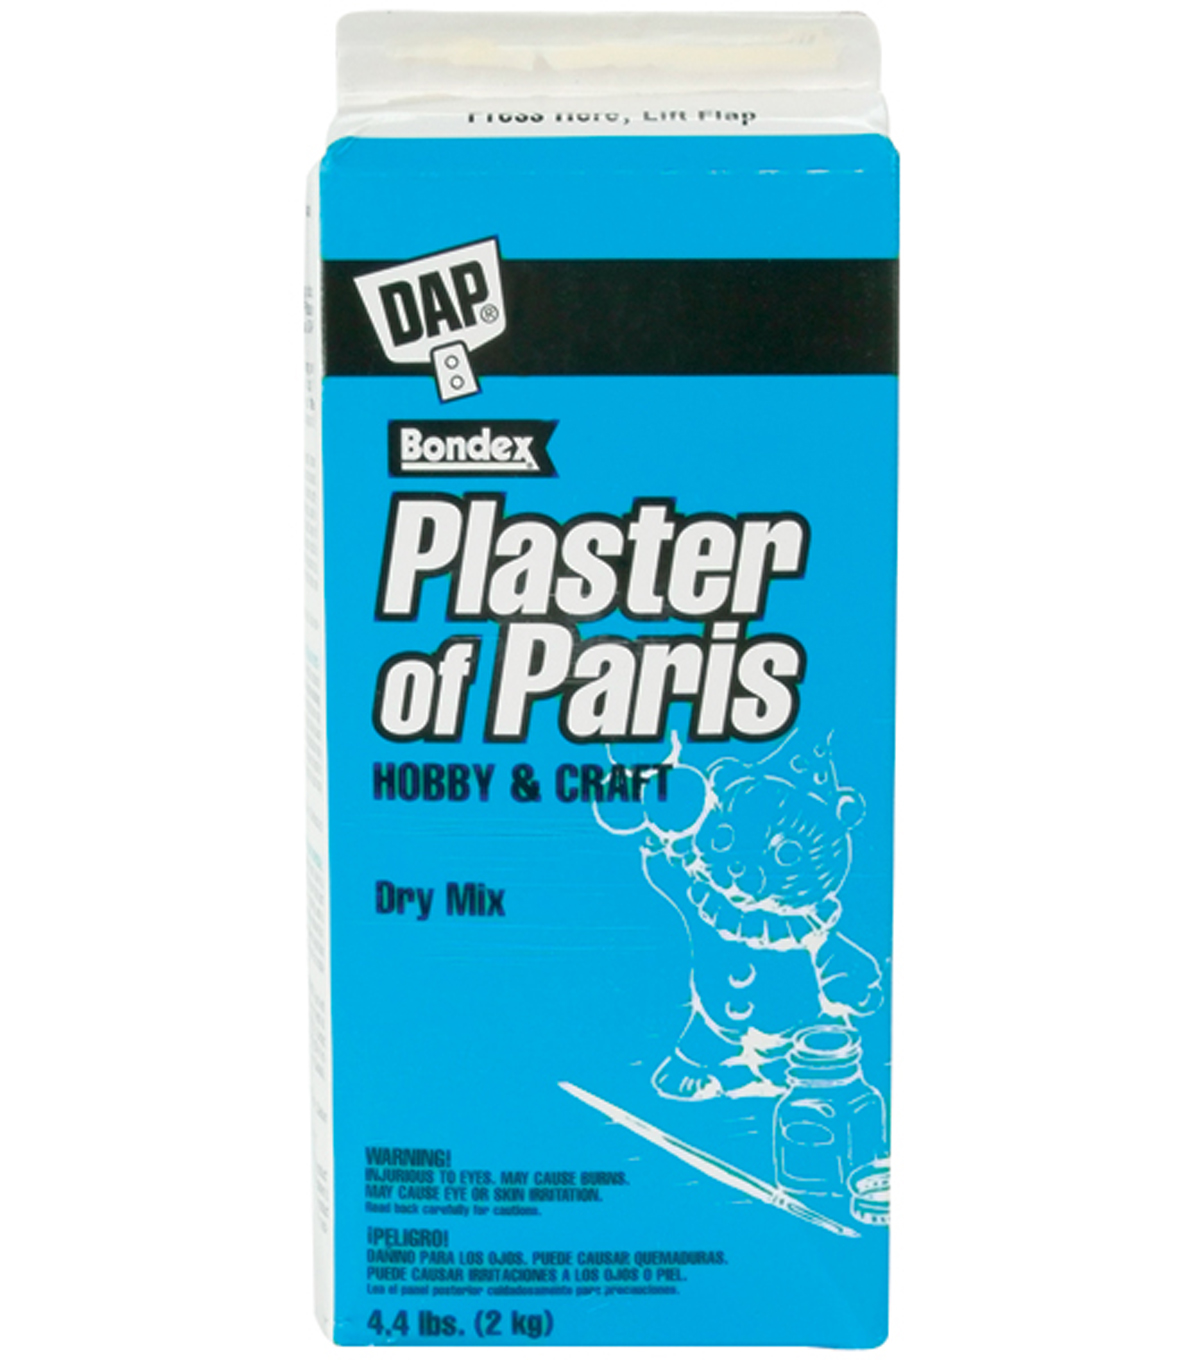 DAP Plaster Of Paris 4.4lb Box-White